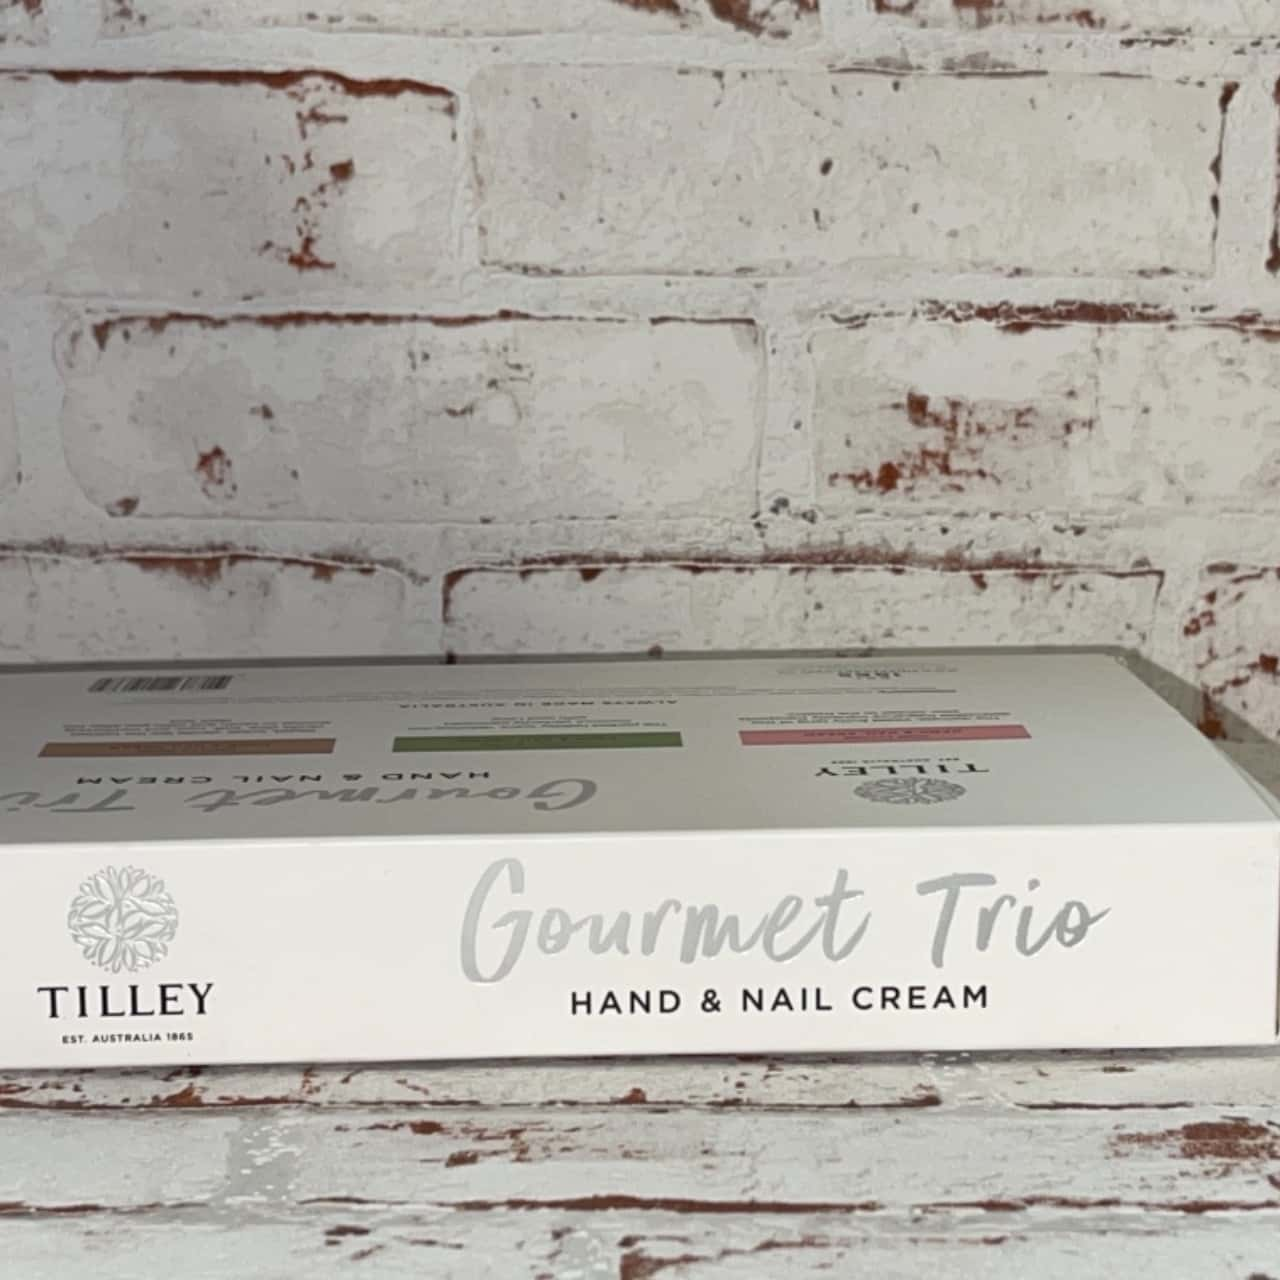 Tillys Gorment Trio 45ml Of Hand & Nail Cream In vanilla bean, coconut and lime and Pink Lychee Fruity Tang